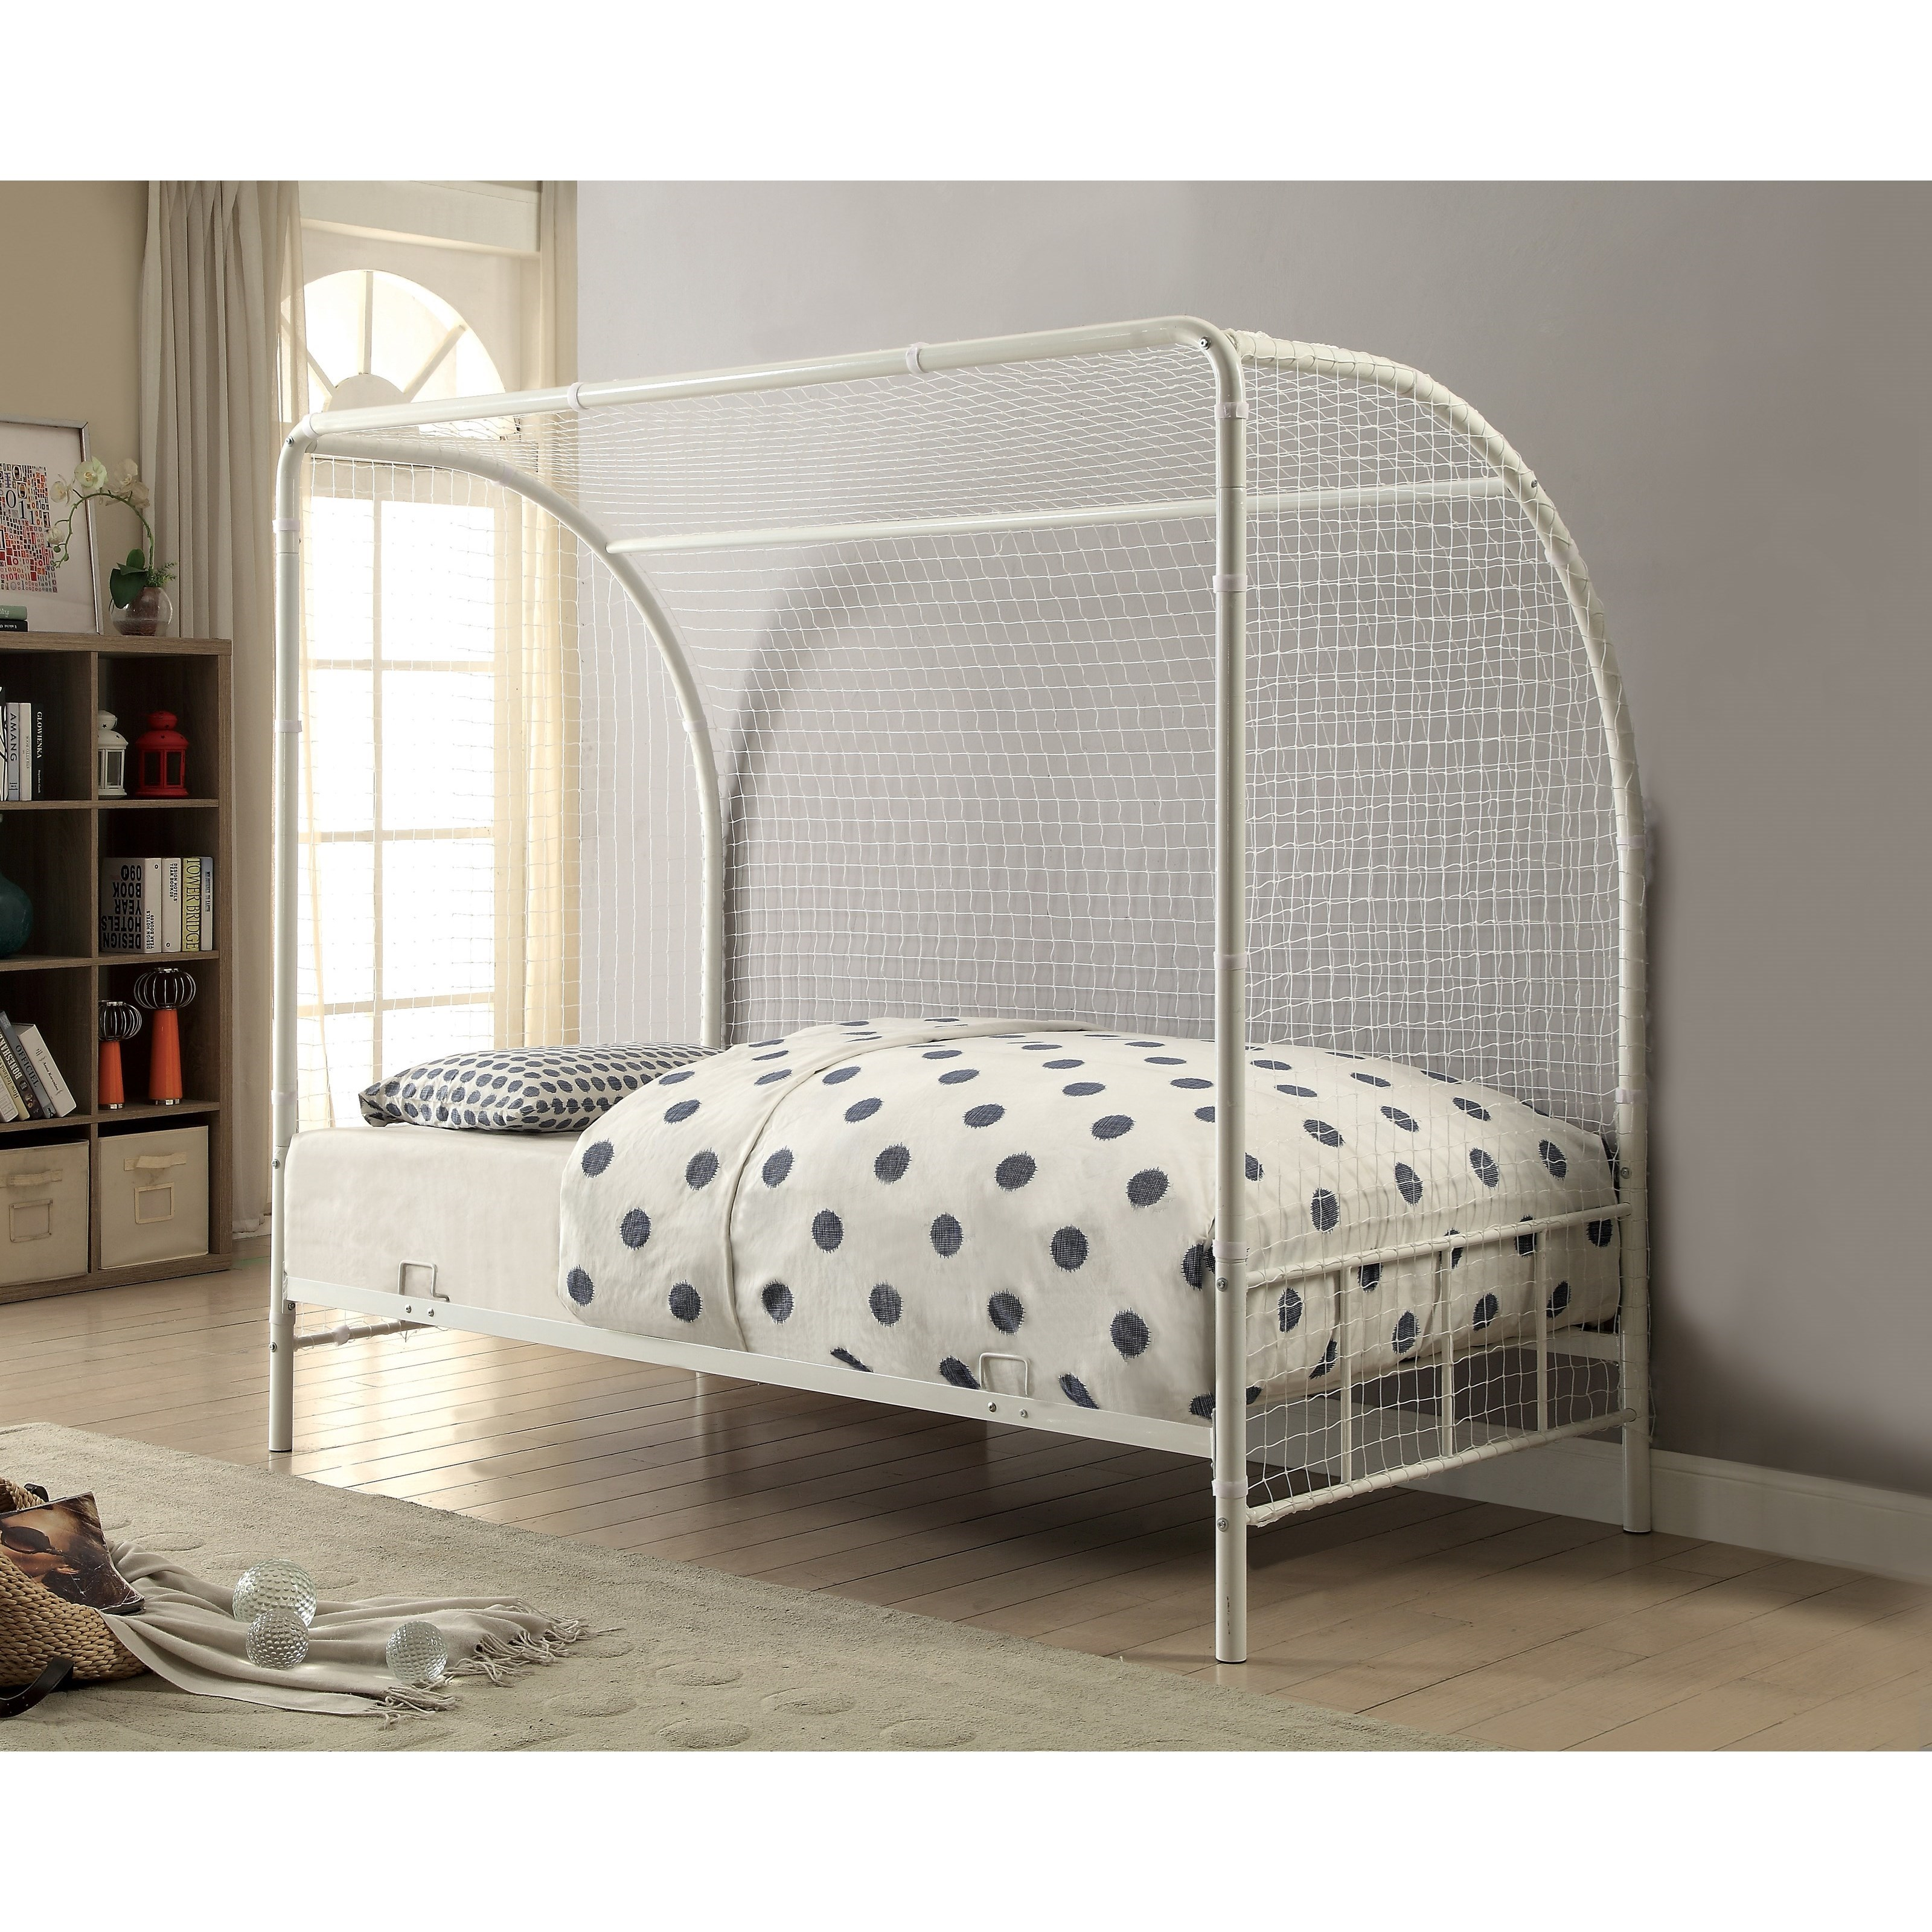 white headboard metal bed twin s frame footboard size with big trundle lots